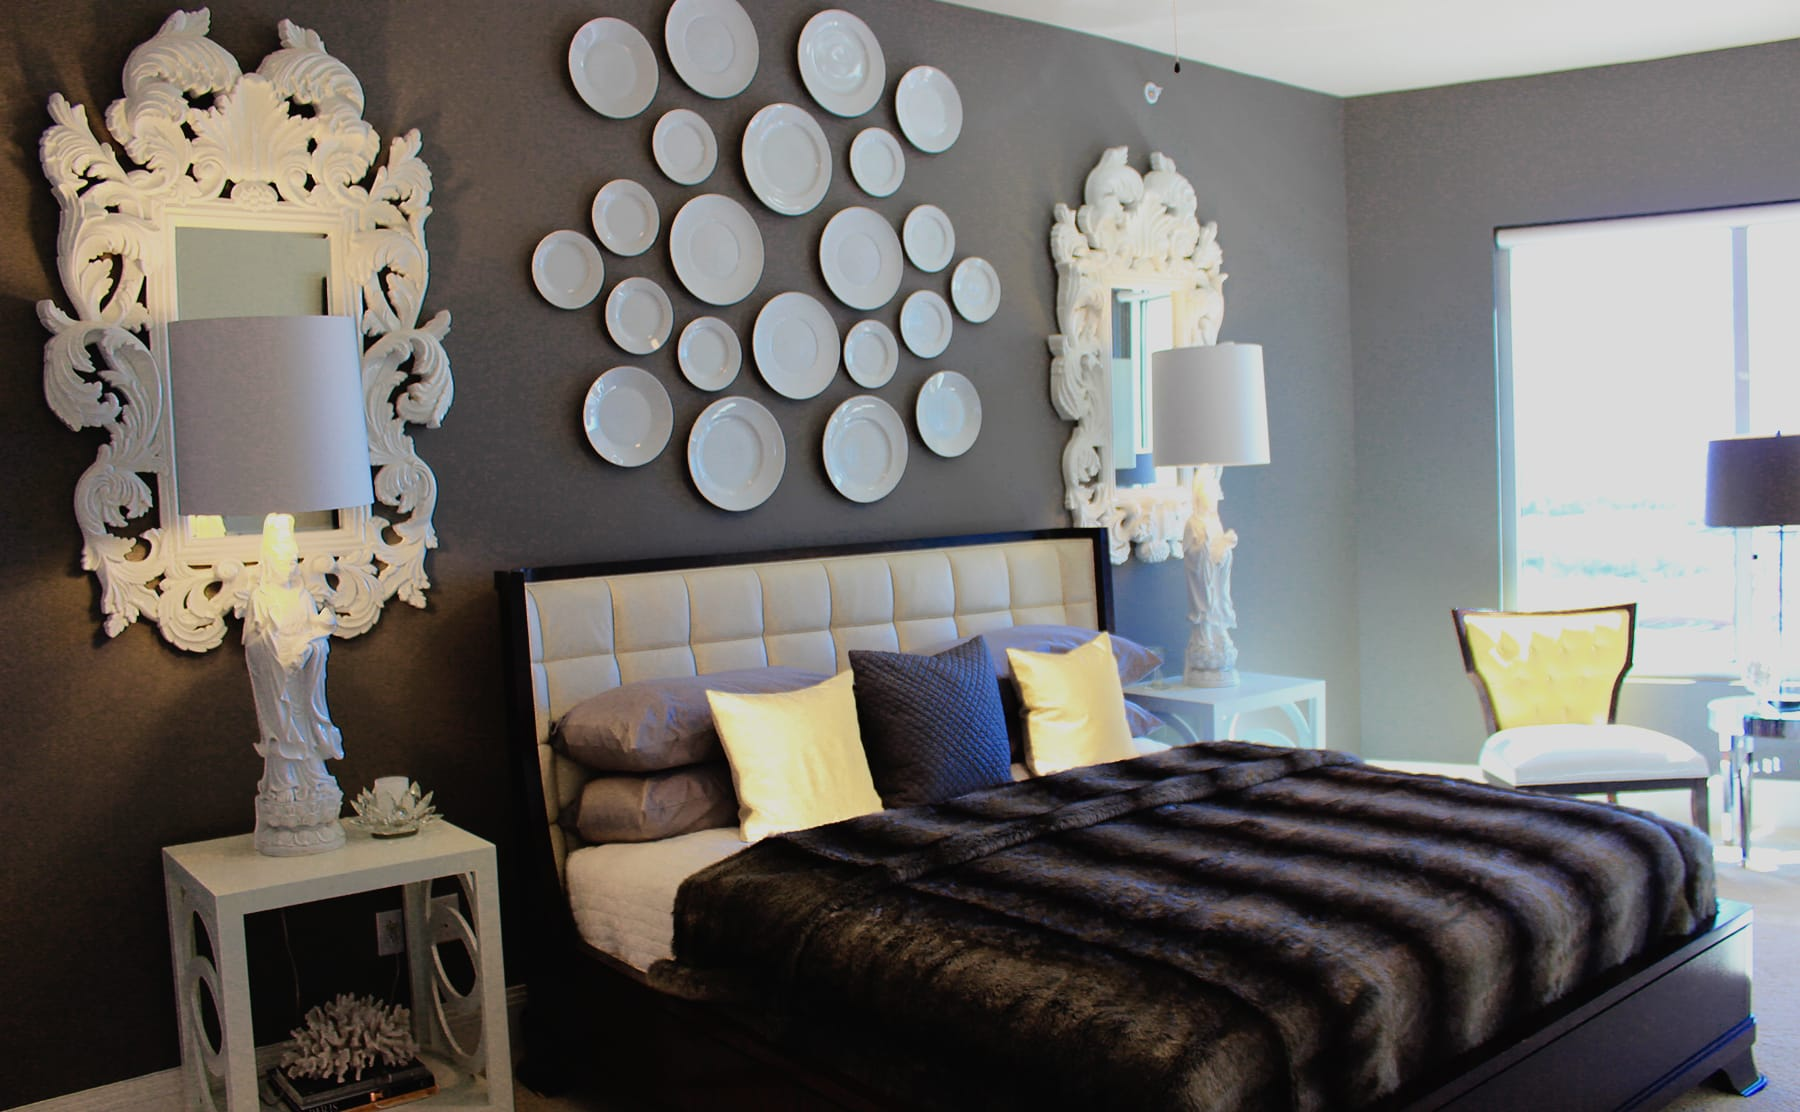 Midtown Dallas Apartment Living - Luxury Bedrooms